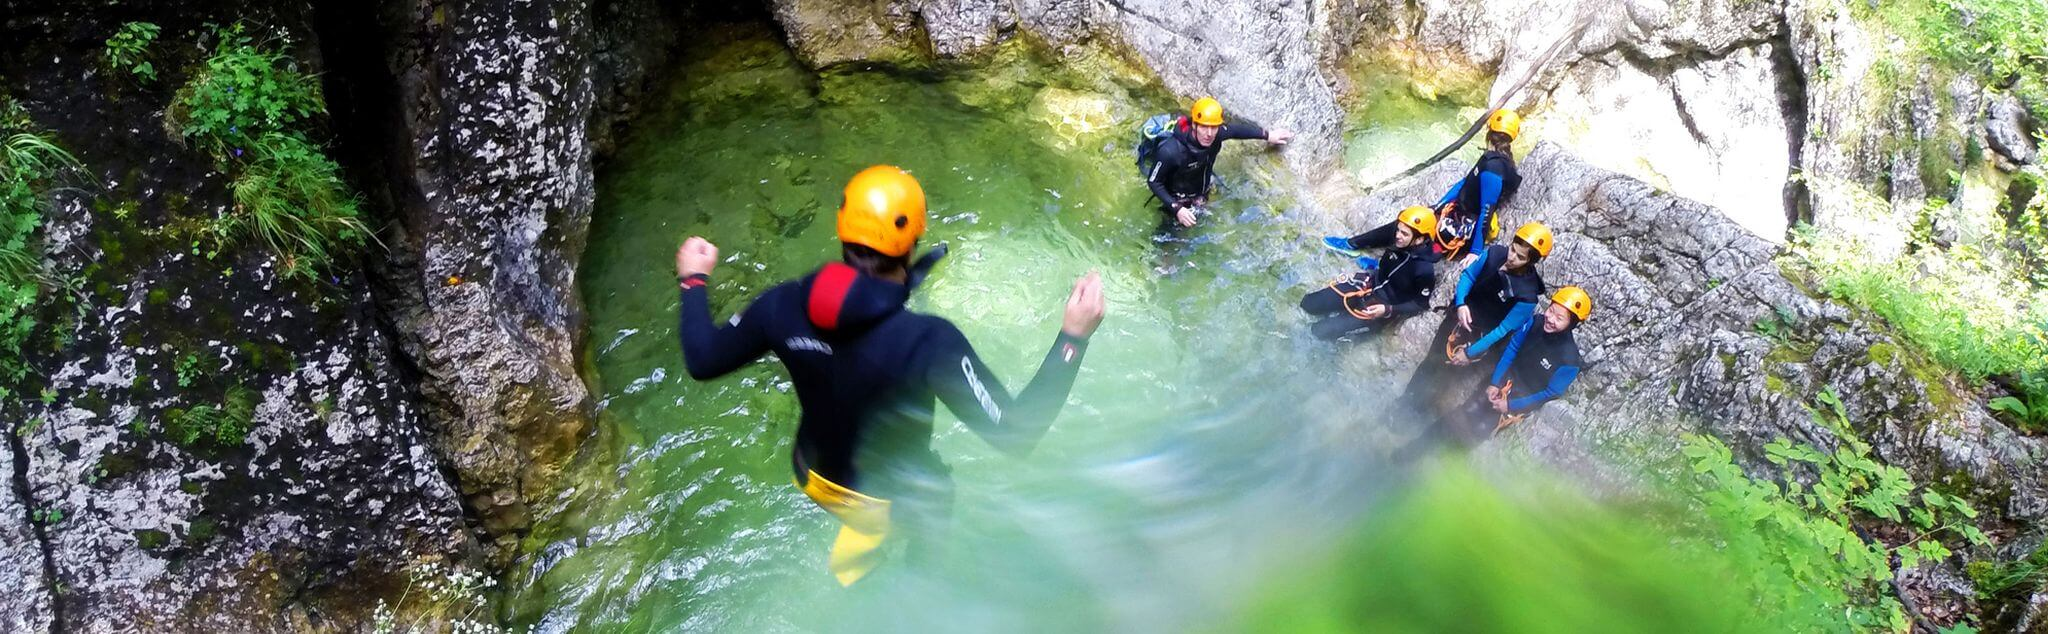 Canyoning in West Sussex